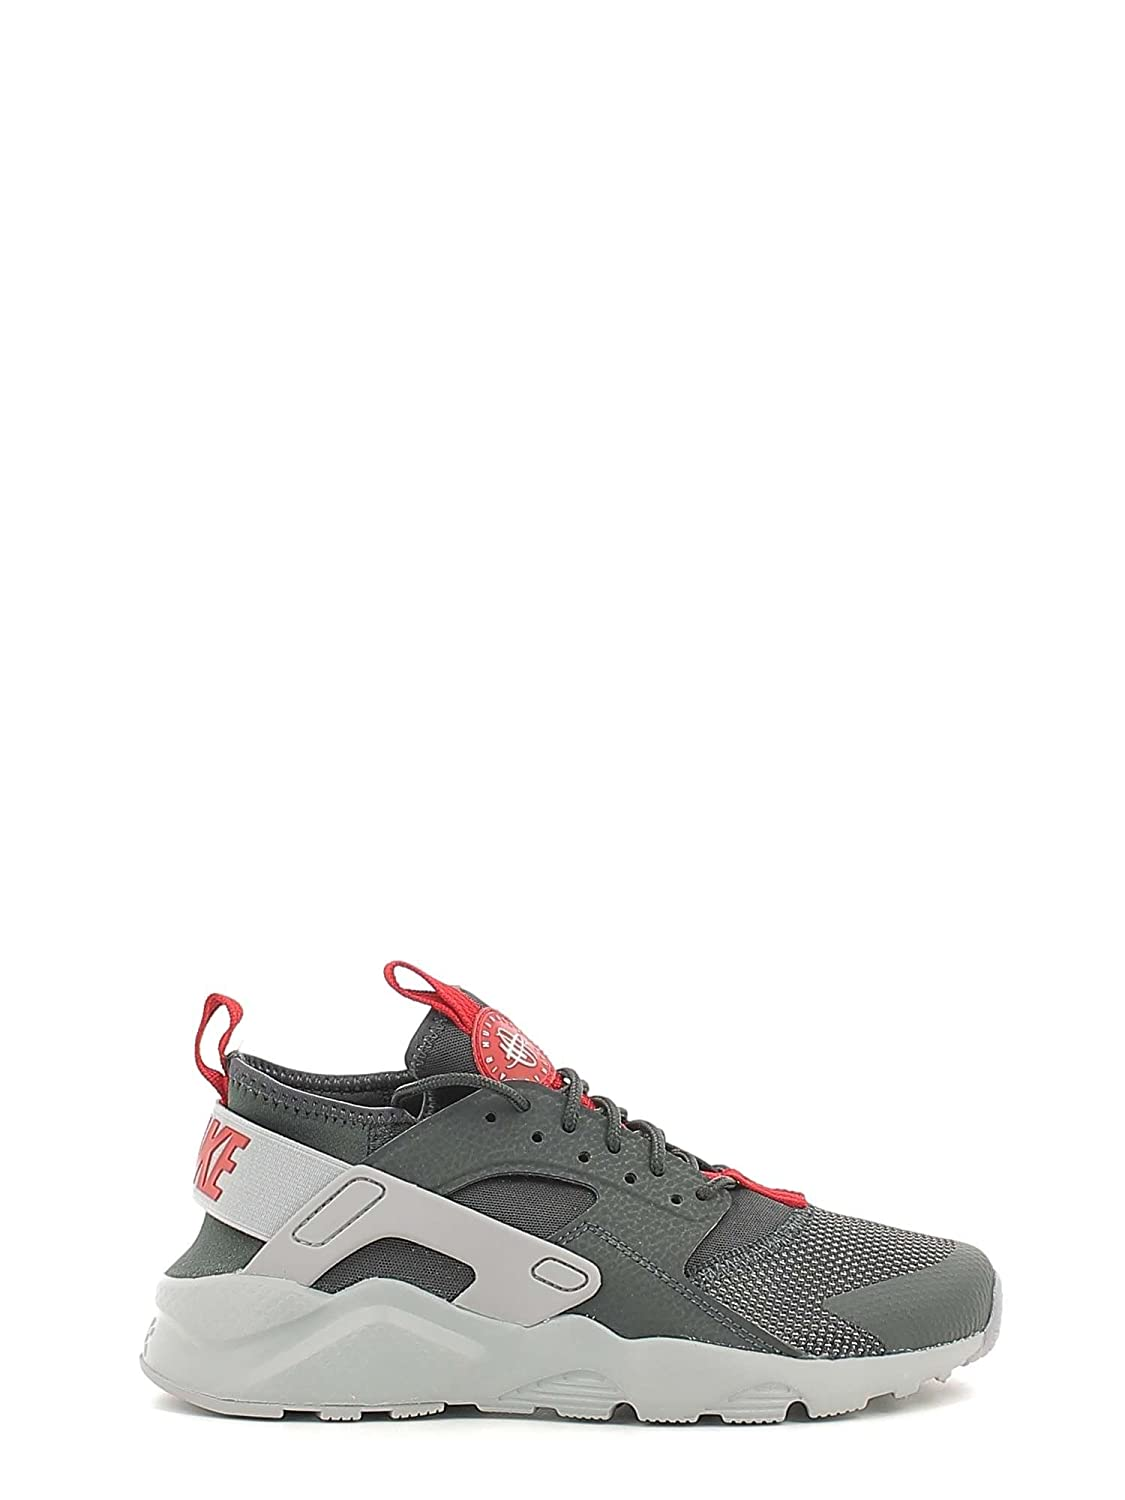 d2be3fbec5ec5 Amazon.com  Nike Air Huarache Run Ultra (Kids) Grey  Shoes